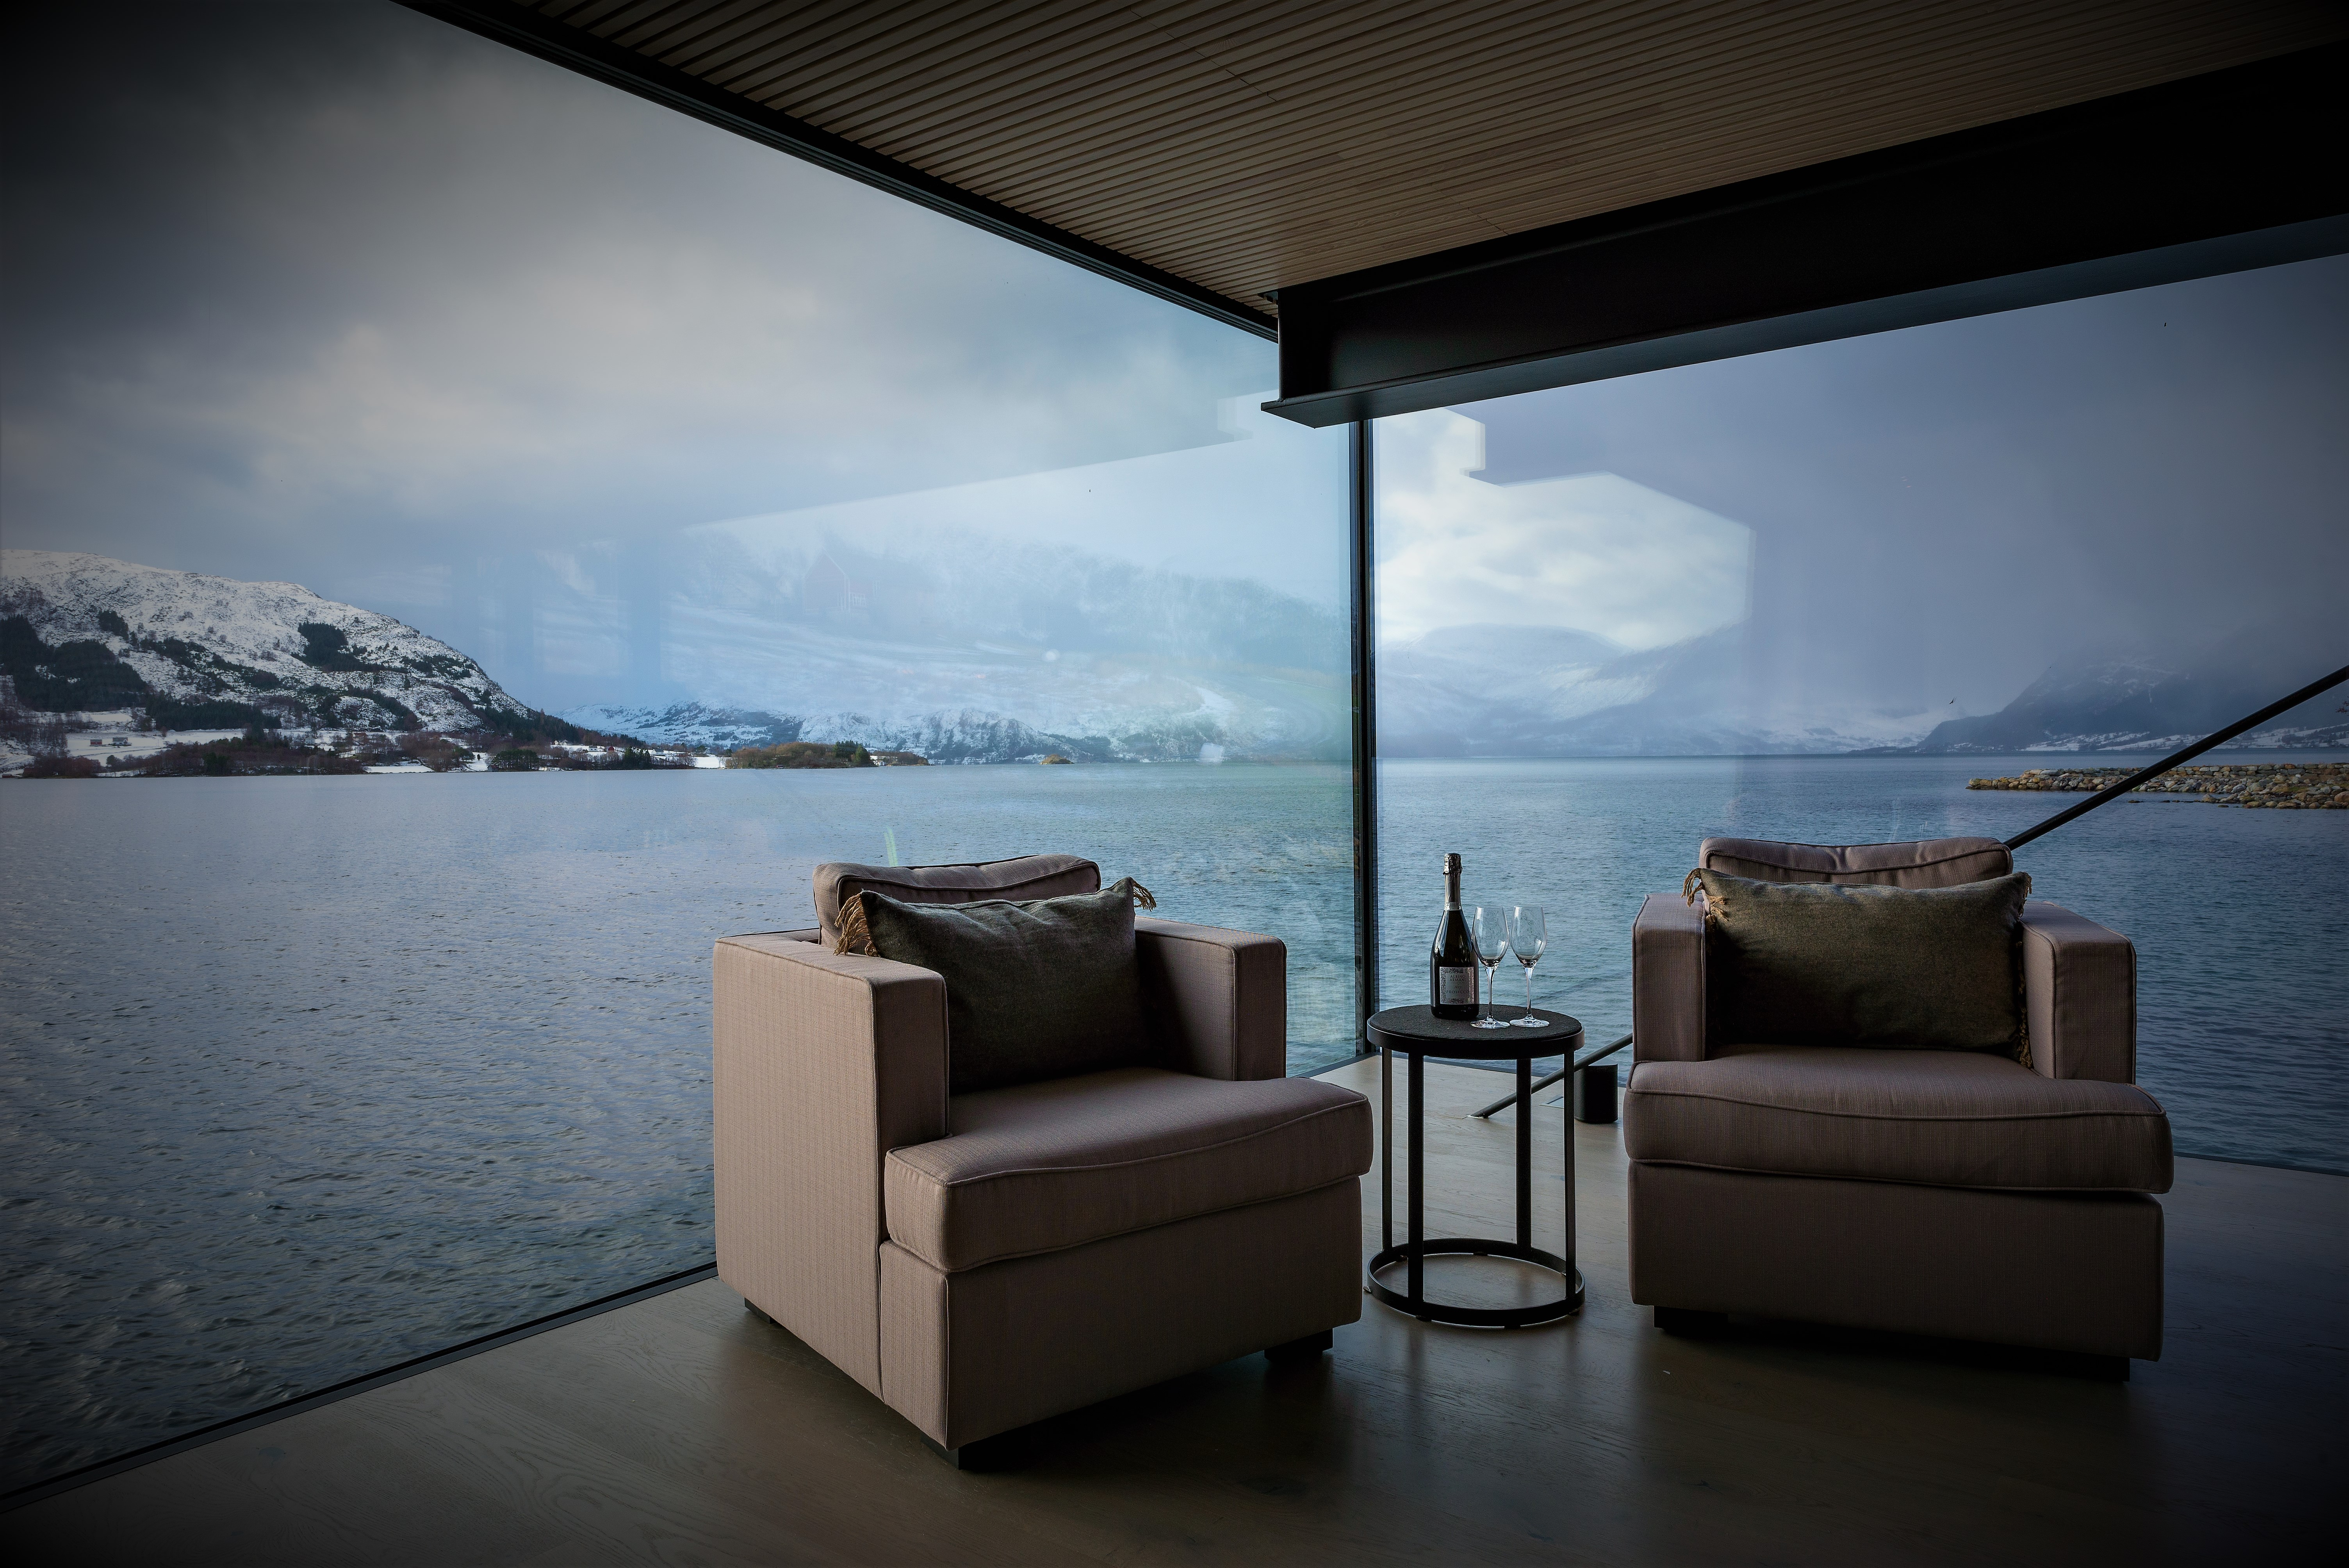 two chairs in front of window, fjord in the background